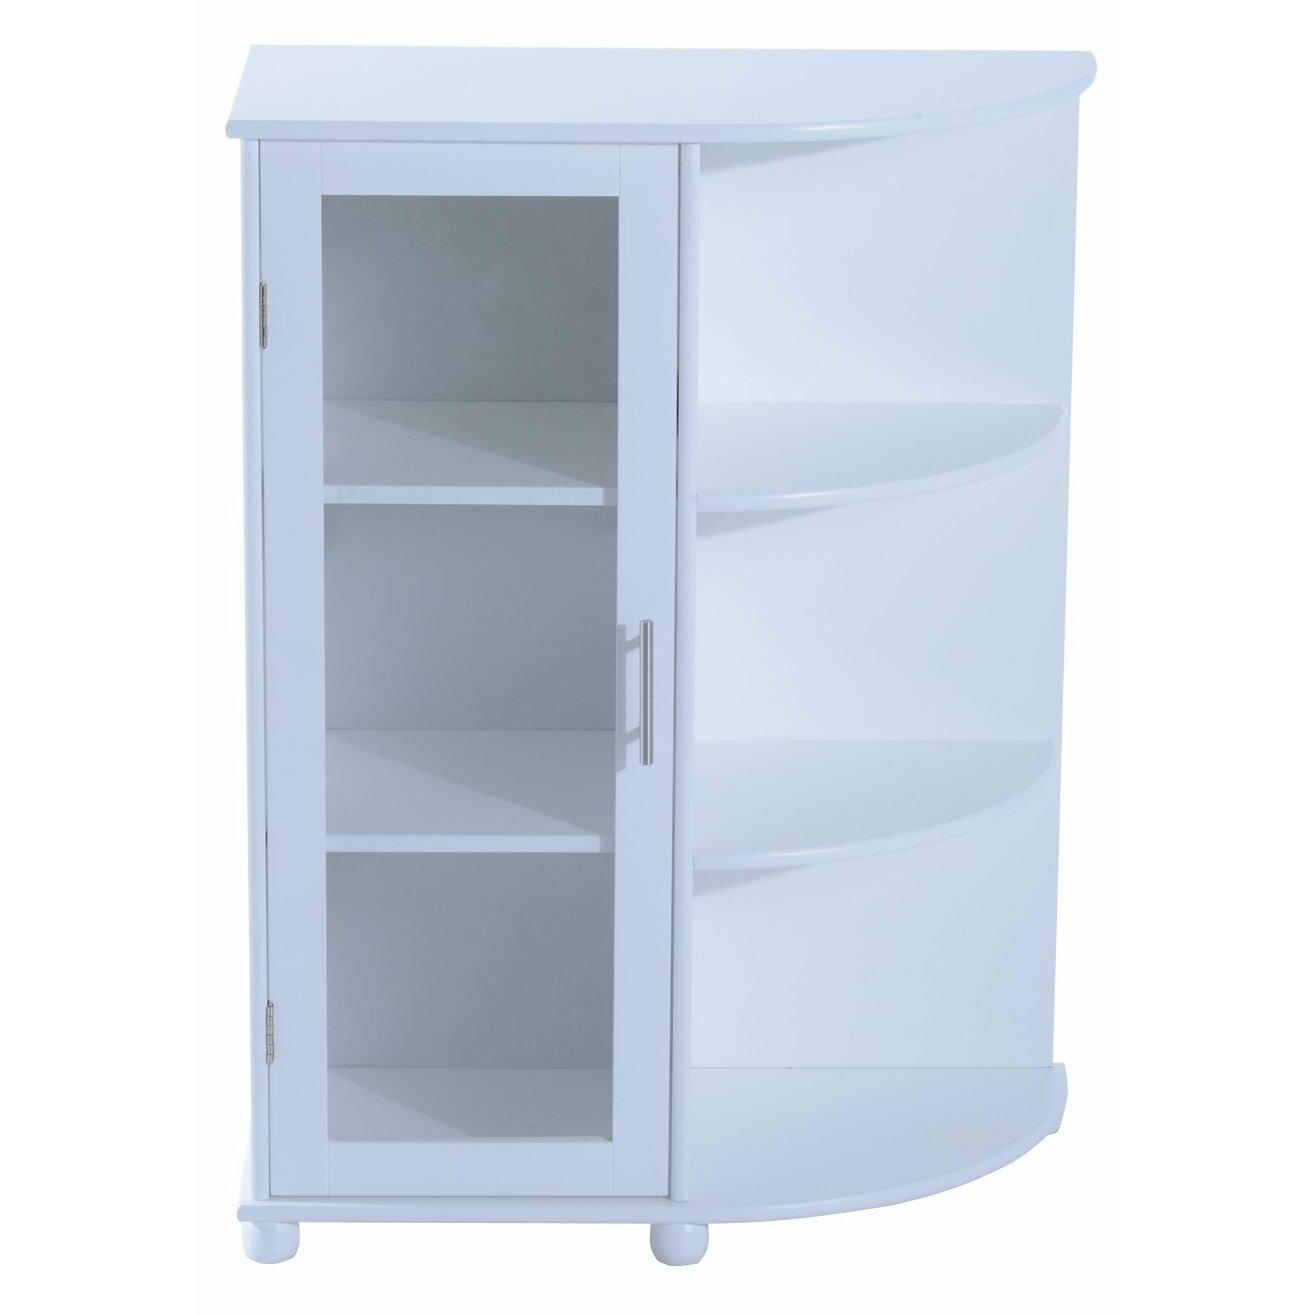 Homcom 30 X 60cm Corner Freestanding Cabinet Wayfair Uk